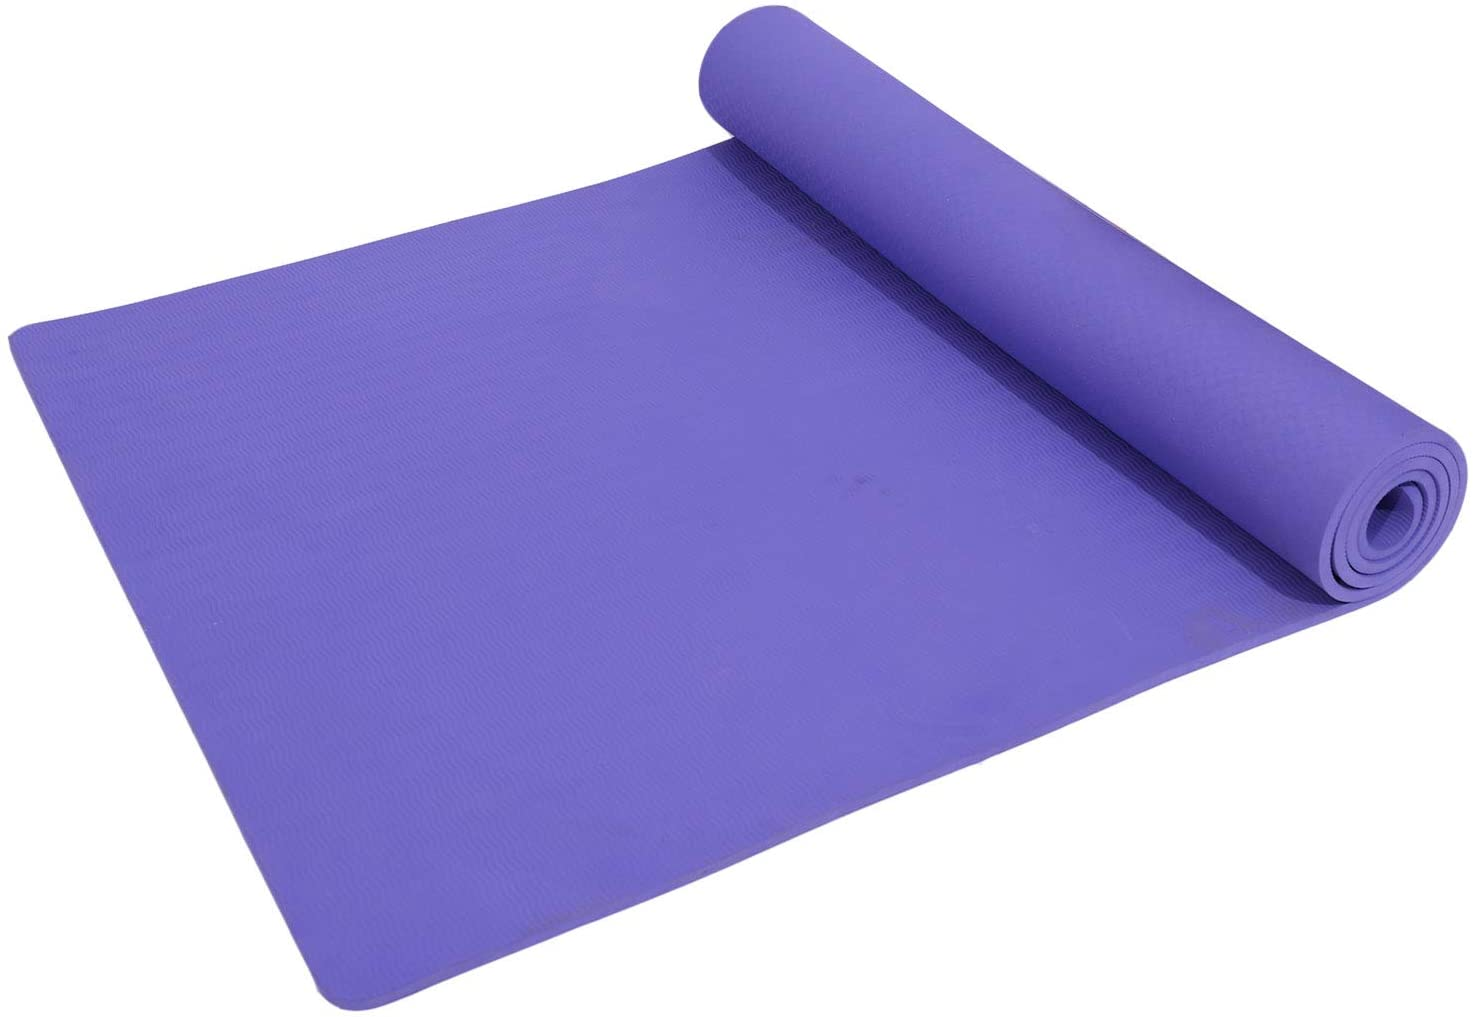 Yoga Mat - Exercise Mat - exercise mattress - 8 mm, purple